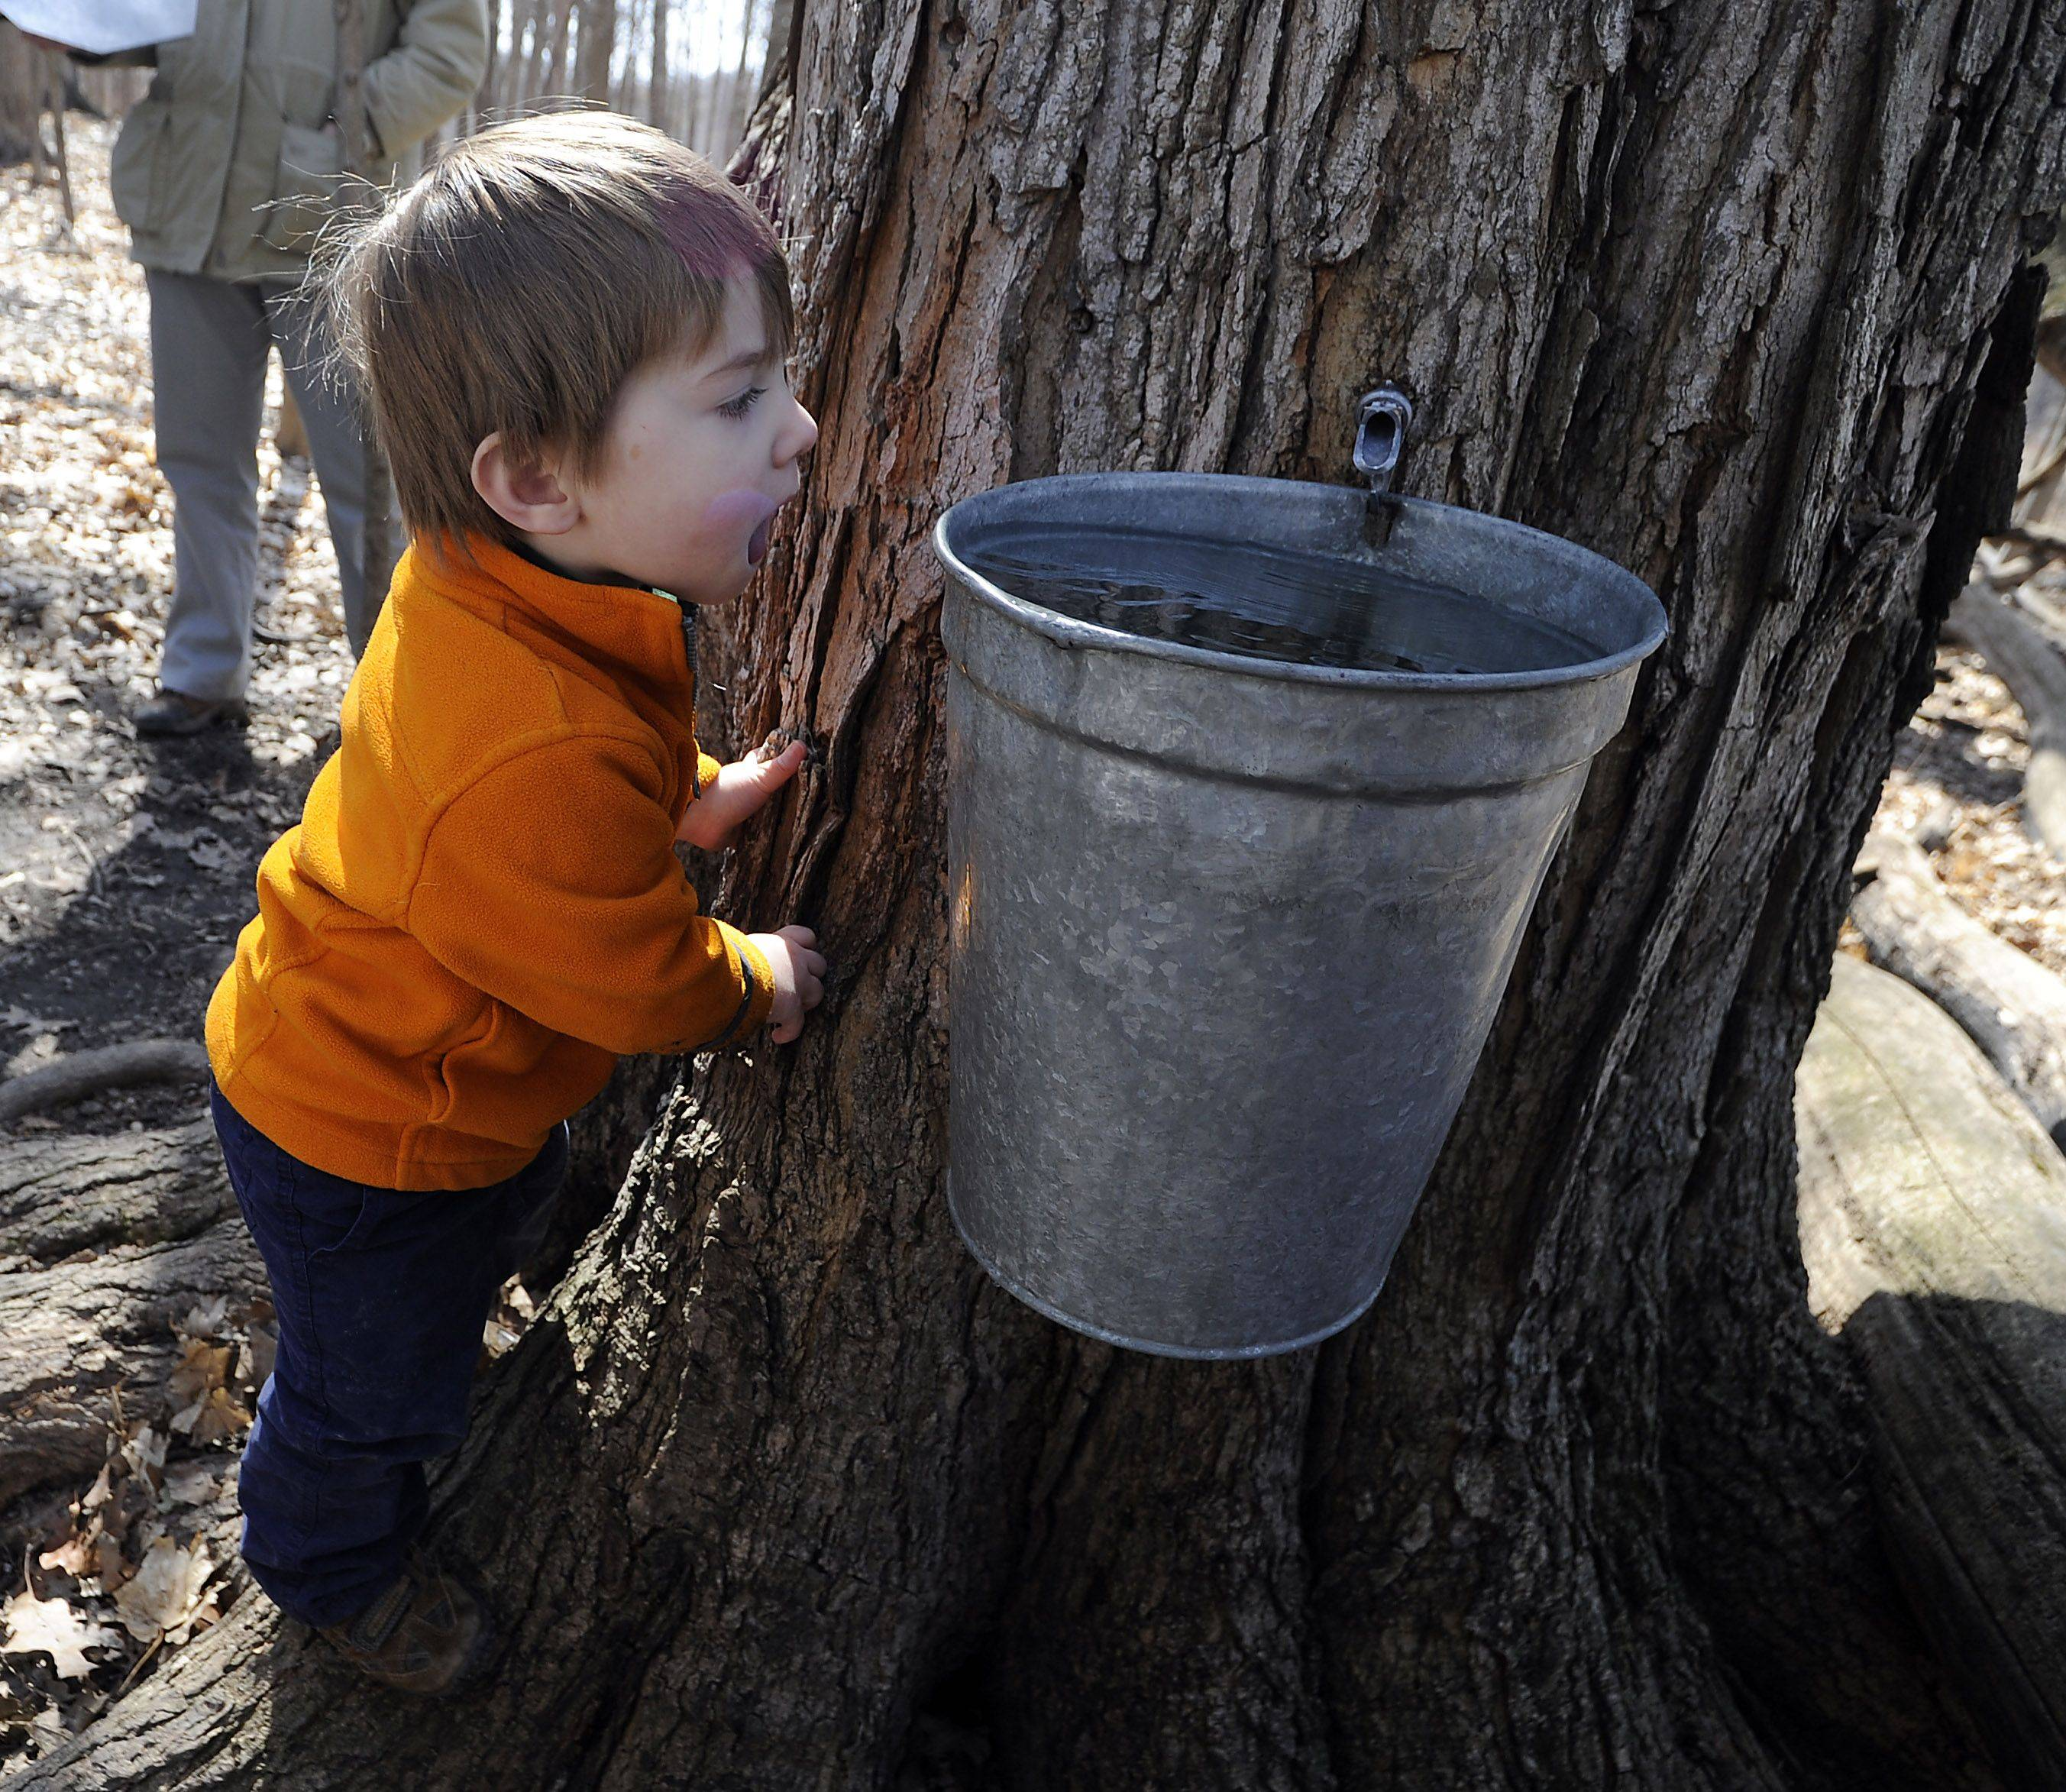 Ryerson Woods Forest Preserve Maple trees started producing their sap for the season which started in February which got David Wurl, 3, of Gurnee curious about what was in these buckets hanging from the trees.